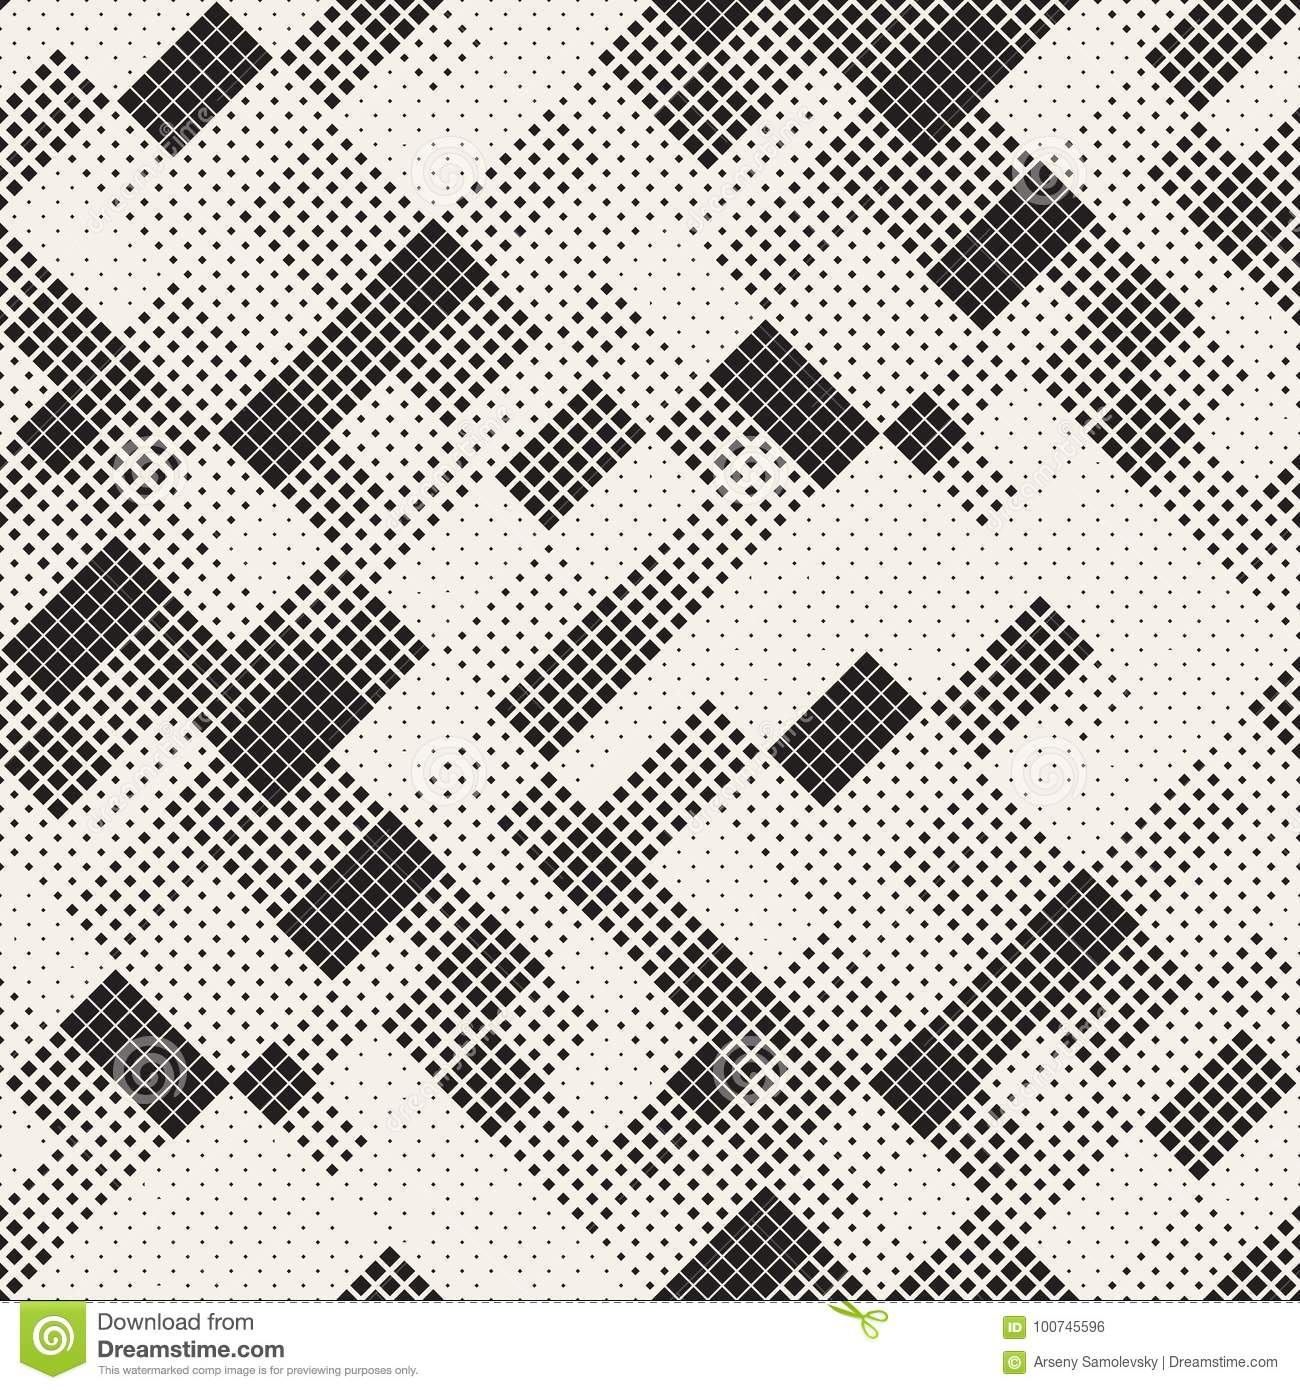 Modern Stylish Halftone Texture. Endless Abstract Background With Random Size Squares. Vector Seamless Chaotic Squares